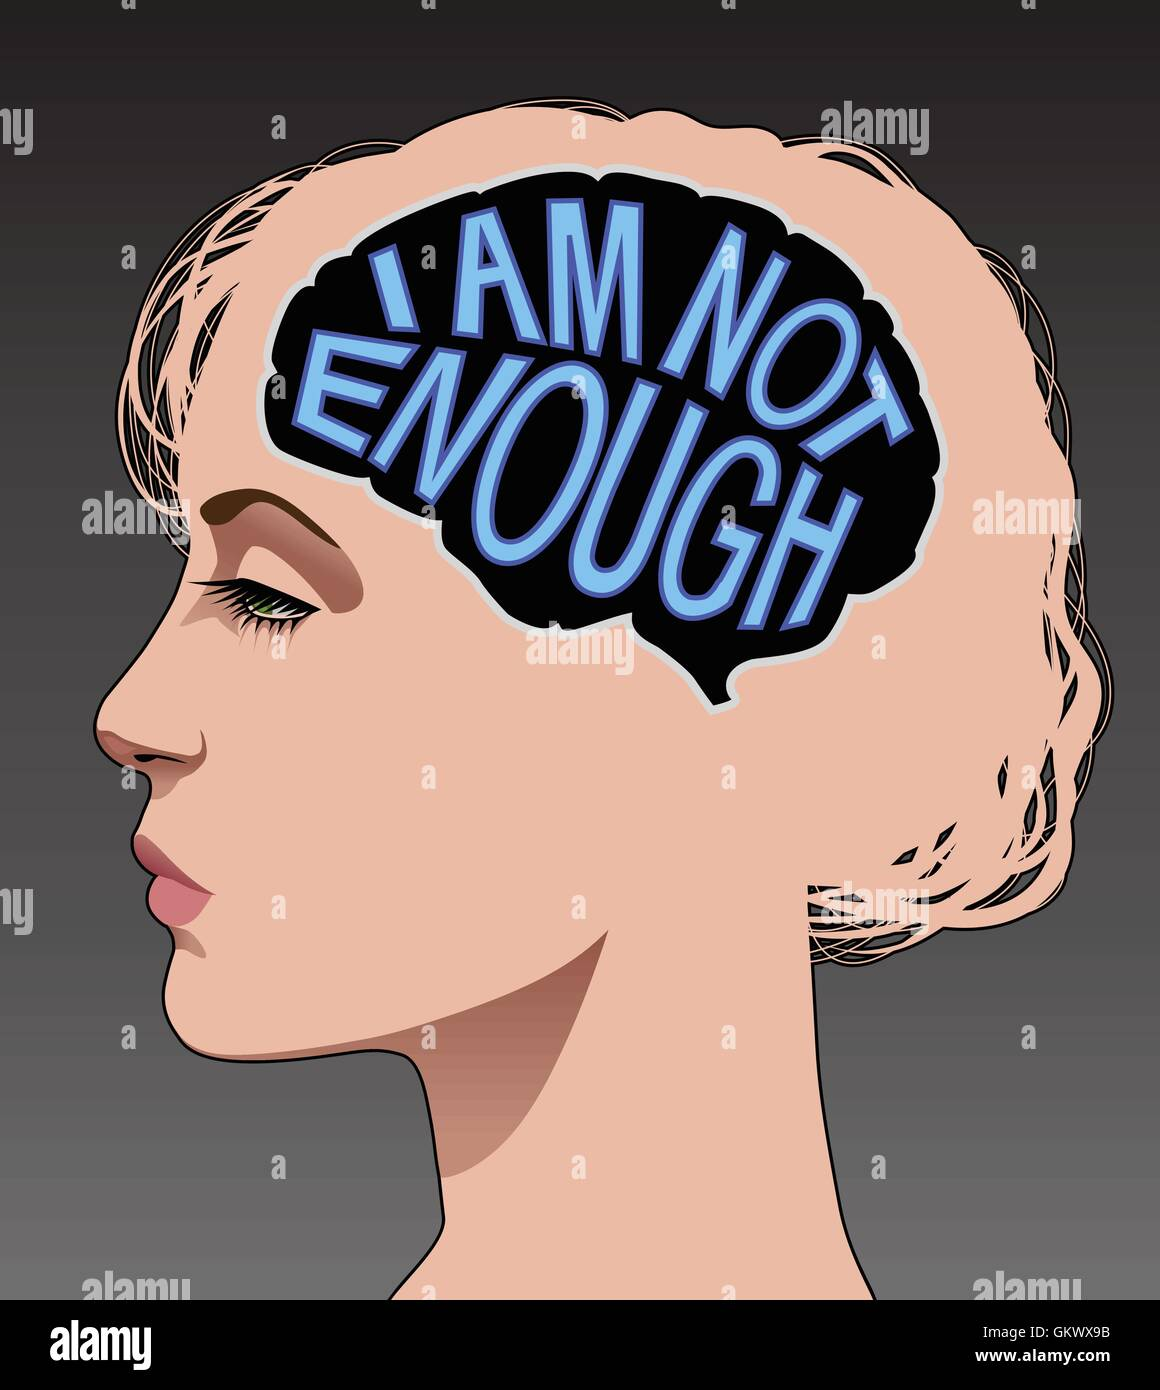 Female profile with a brain consisting of the words 'I am not enough' illustrating low self esteem. - Stock Image